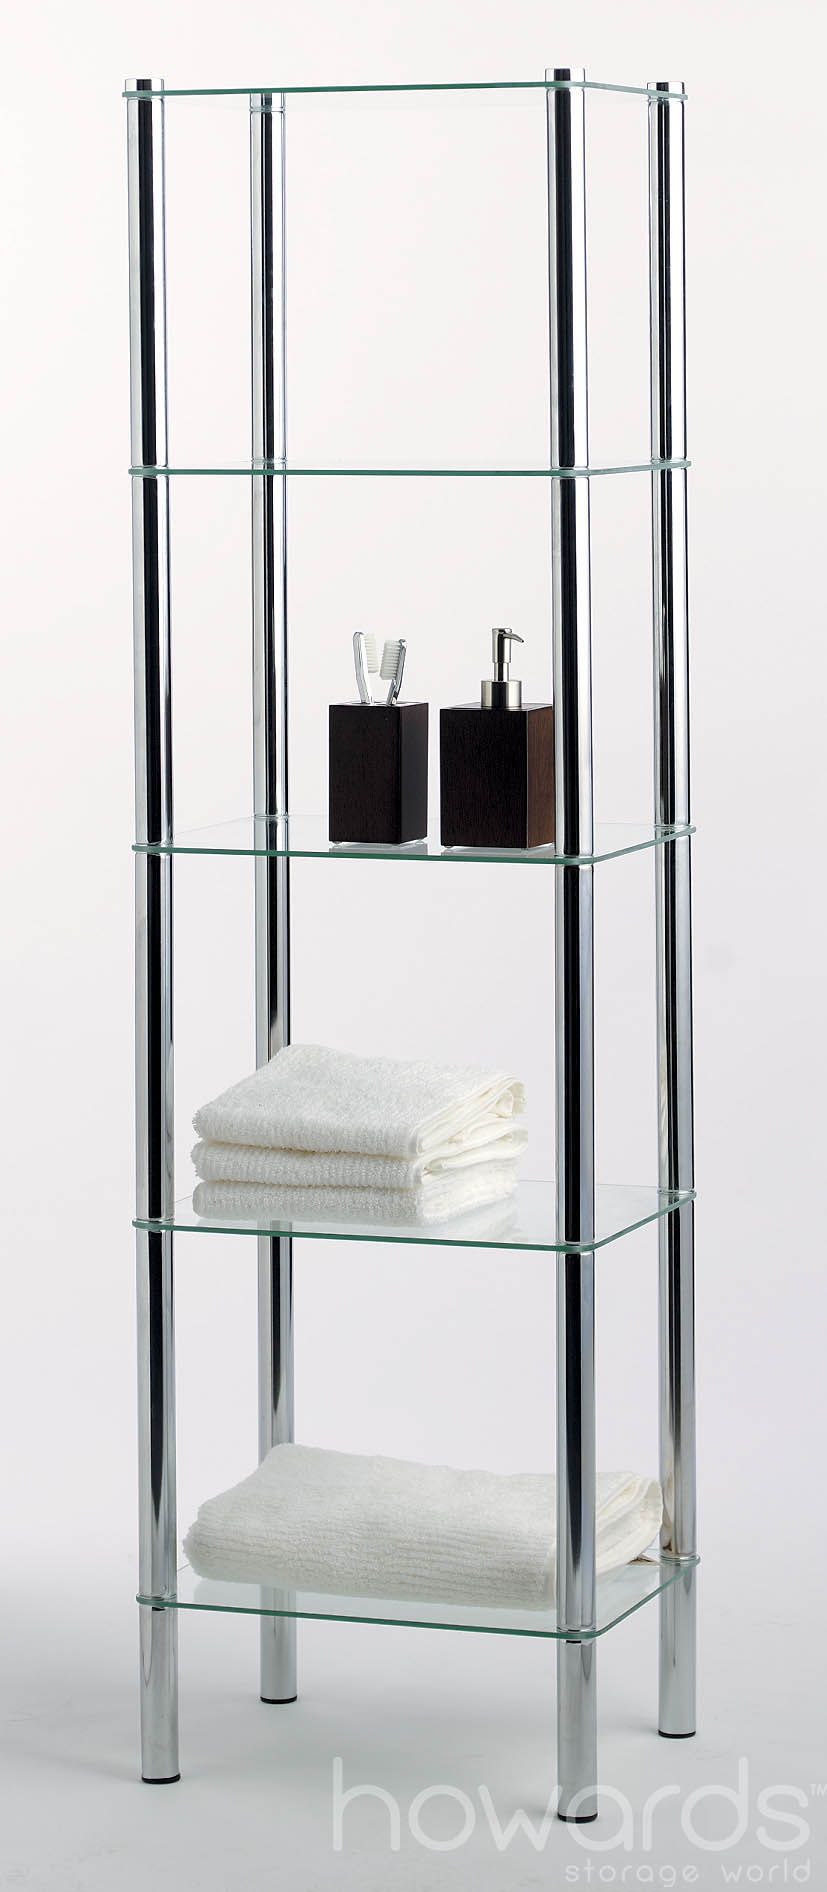 5 Tier Gl Shelf Unit Available From Howards Storage World